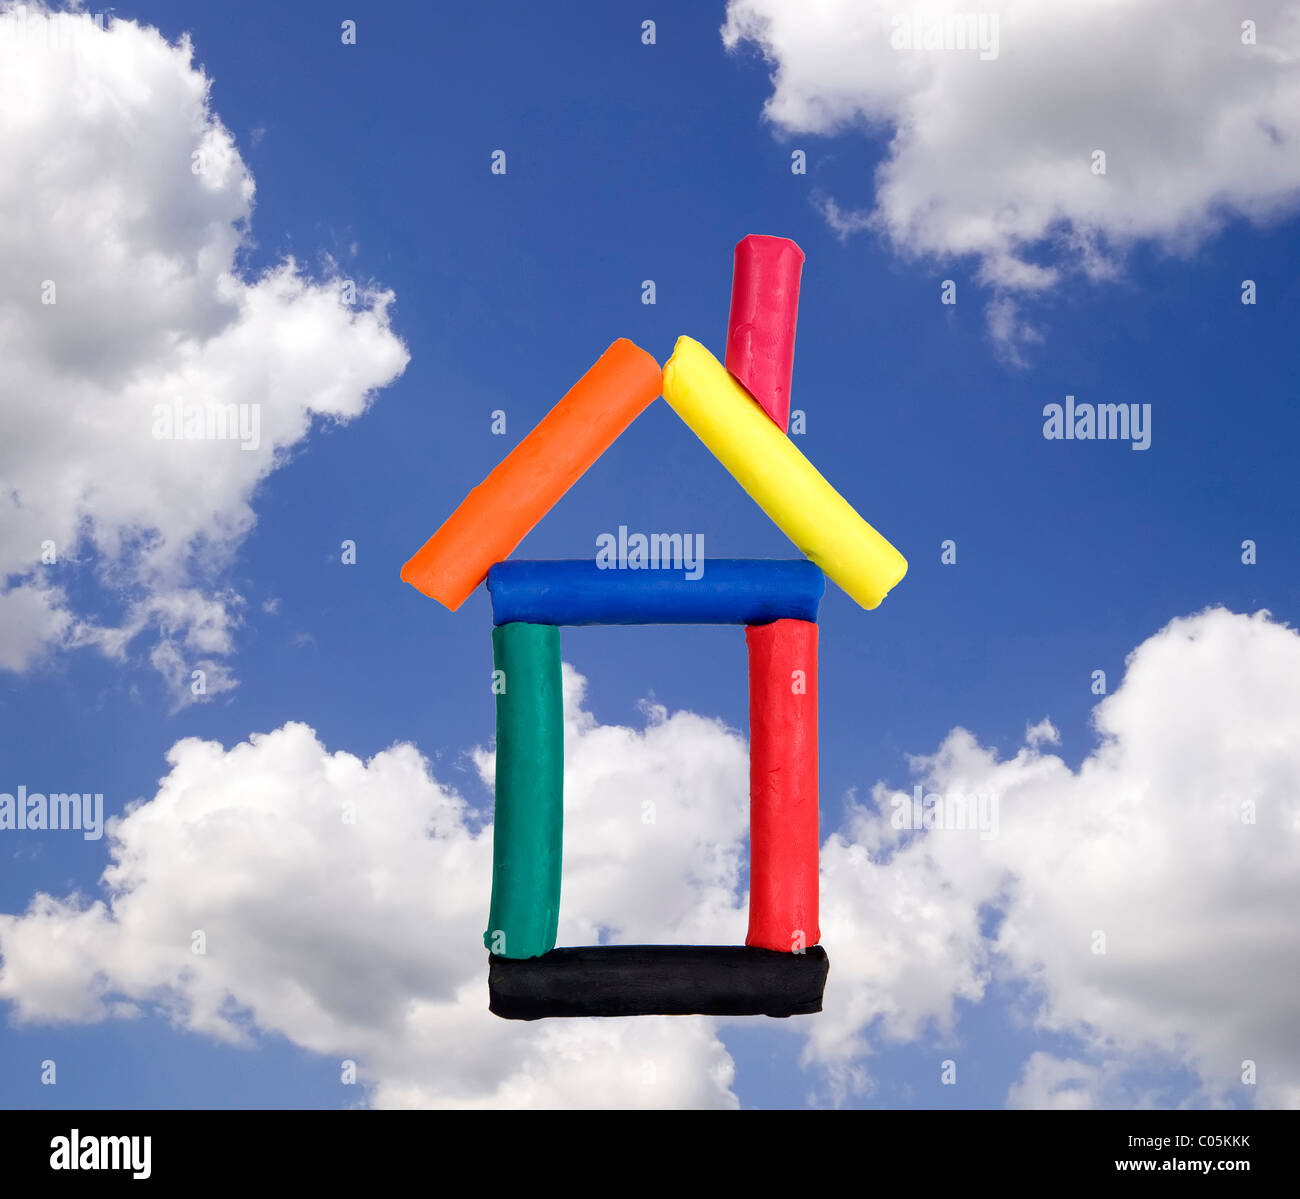 Funny house made from colorful plasticine on sky background - Stock Image